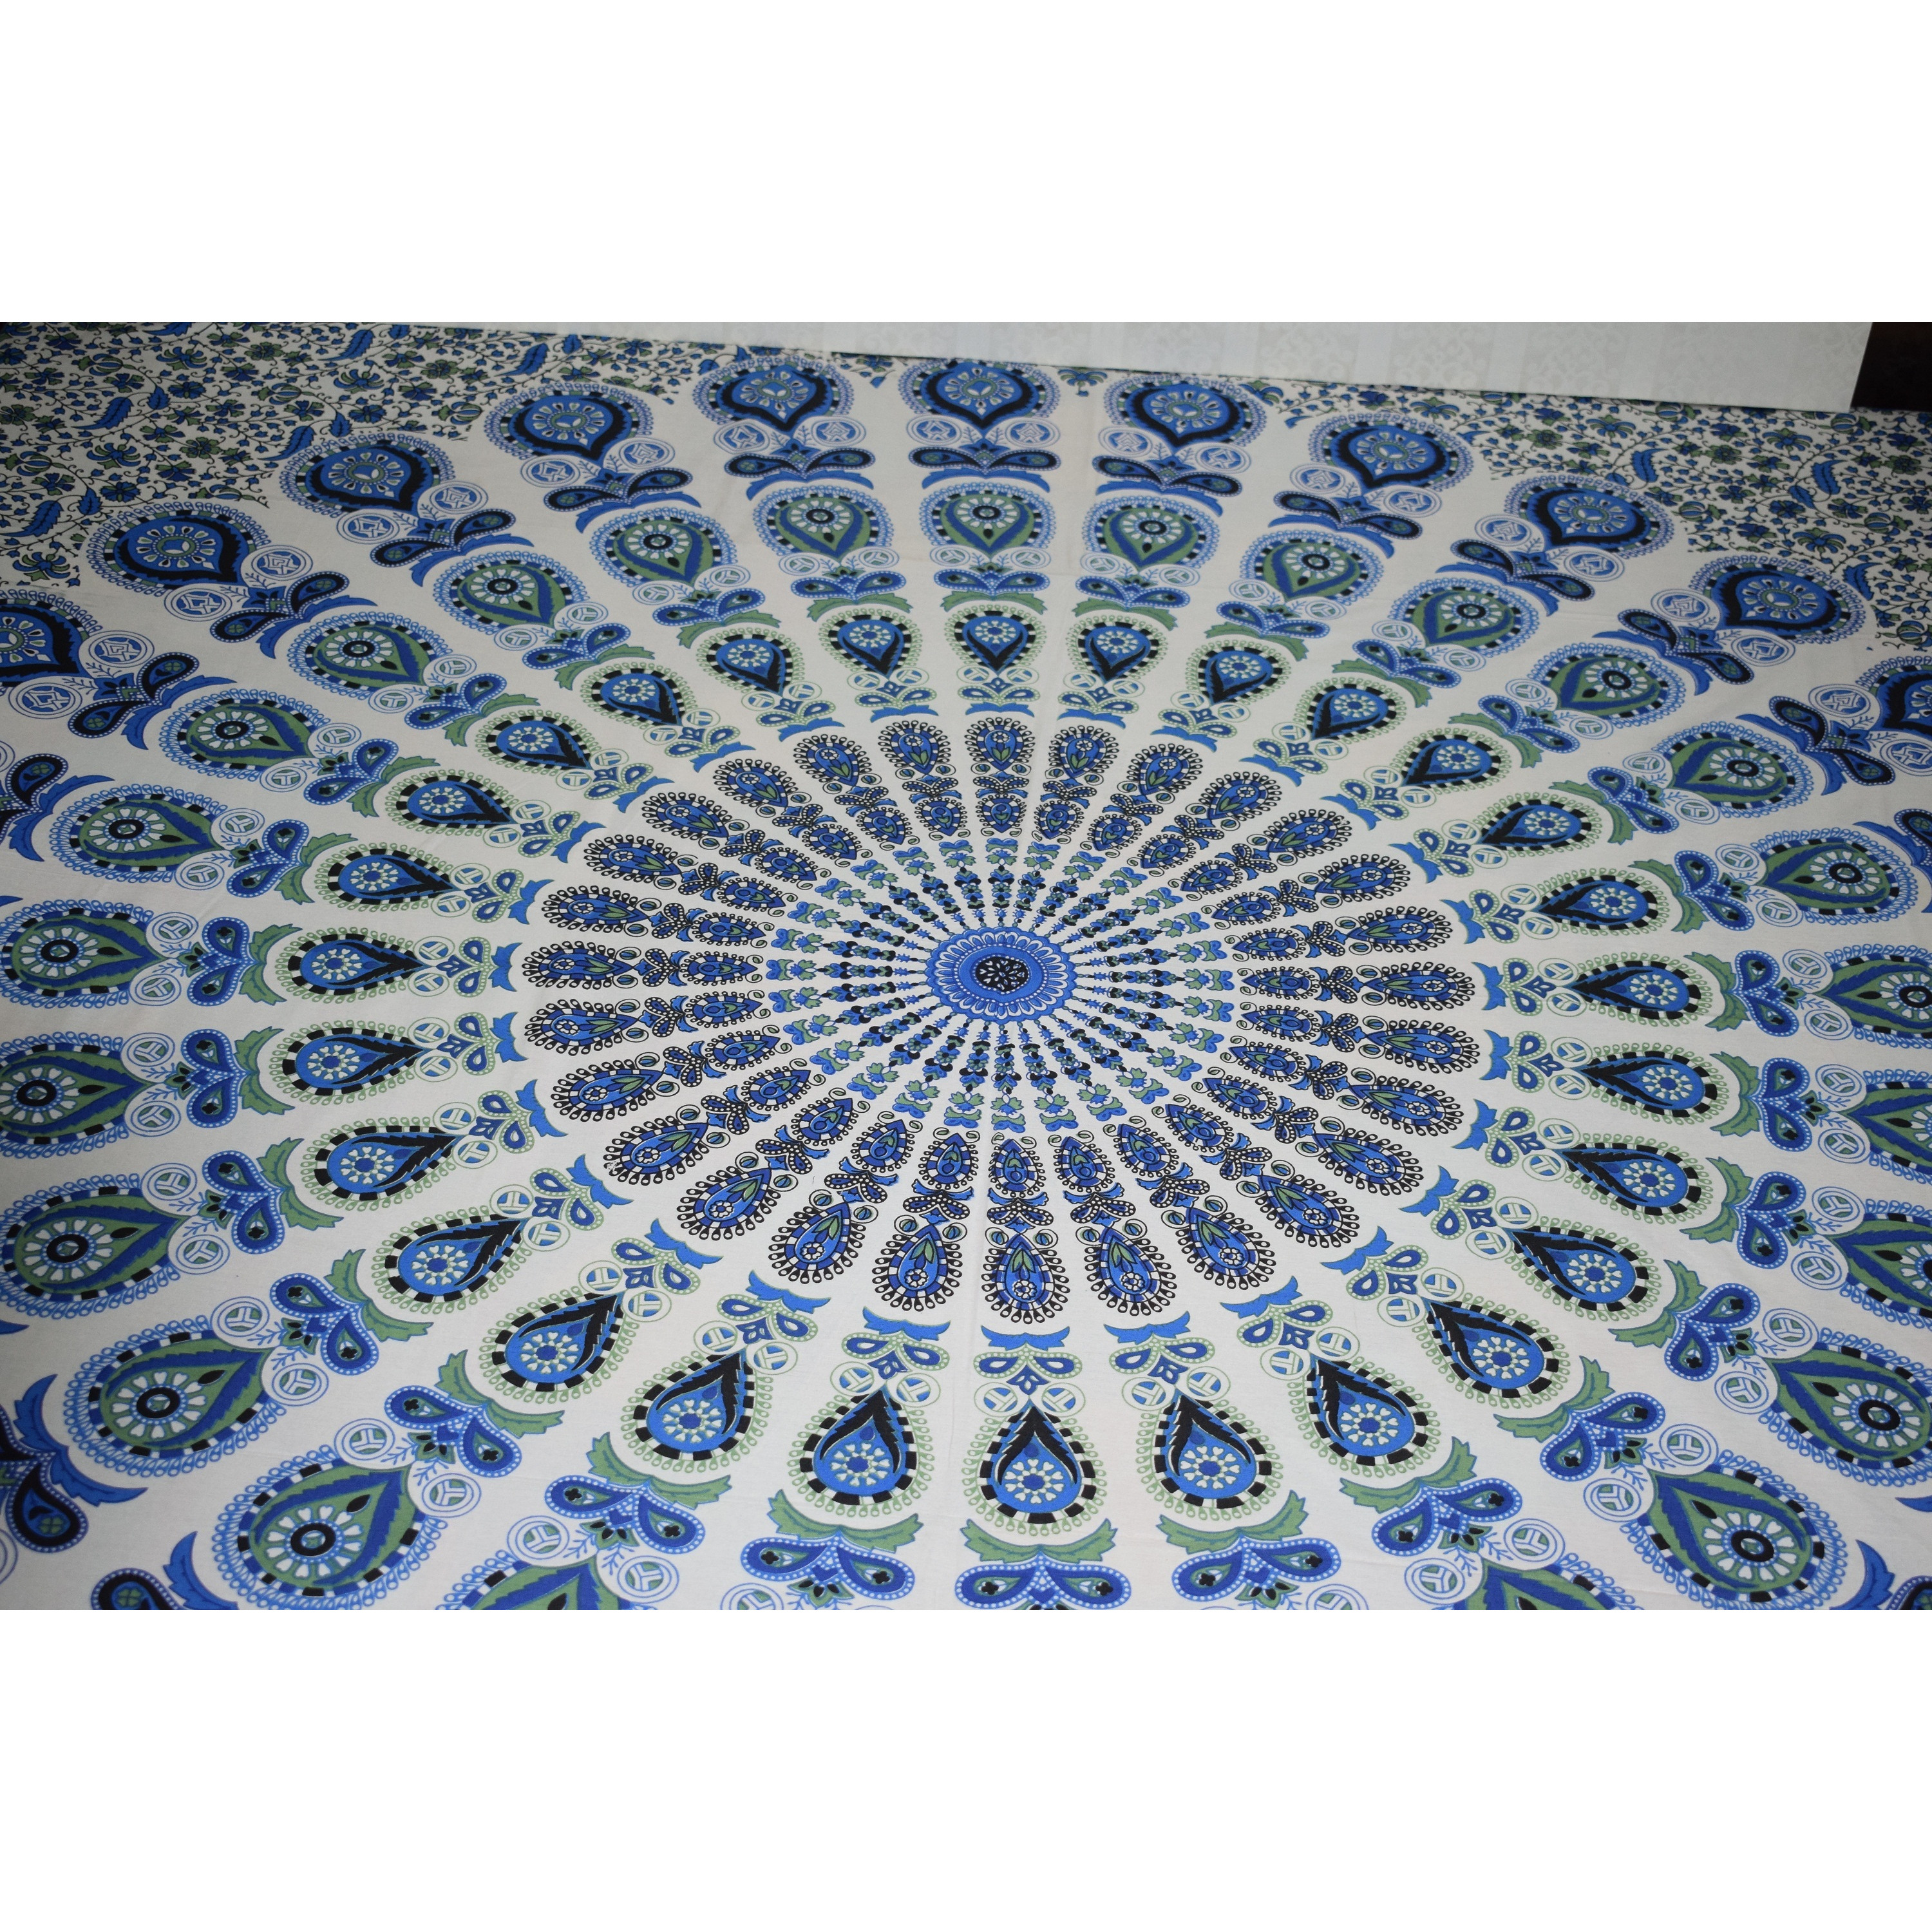 Double Bedsheet Cotton Queen Size Indian Mandala Tapestry Wall Hanging Home Decor